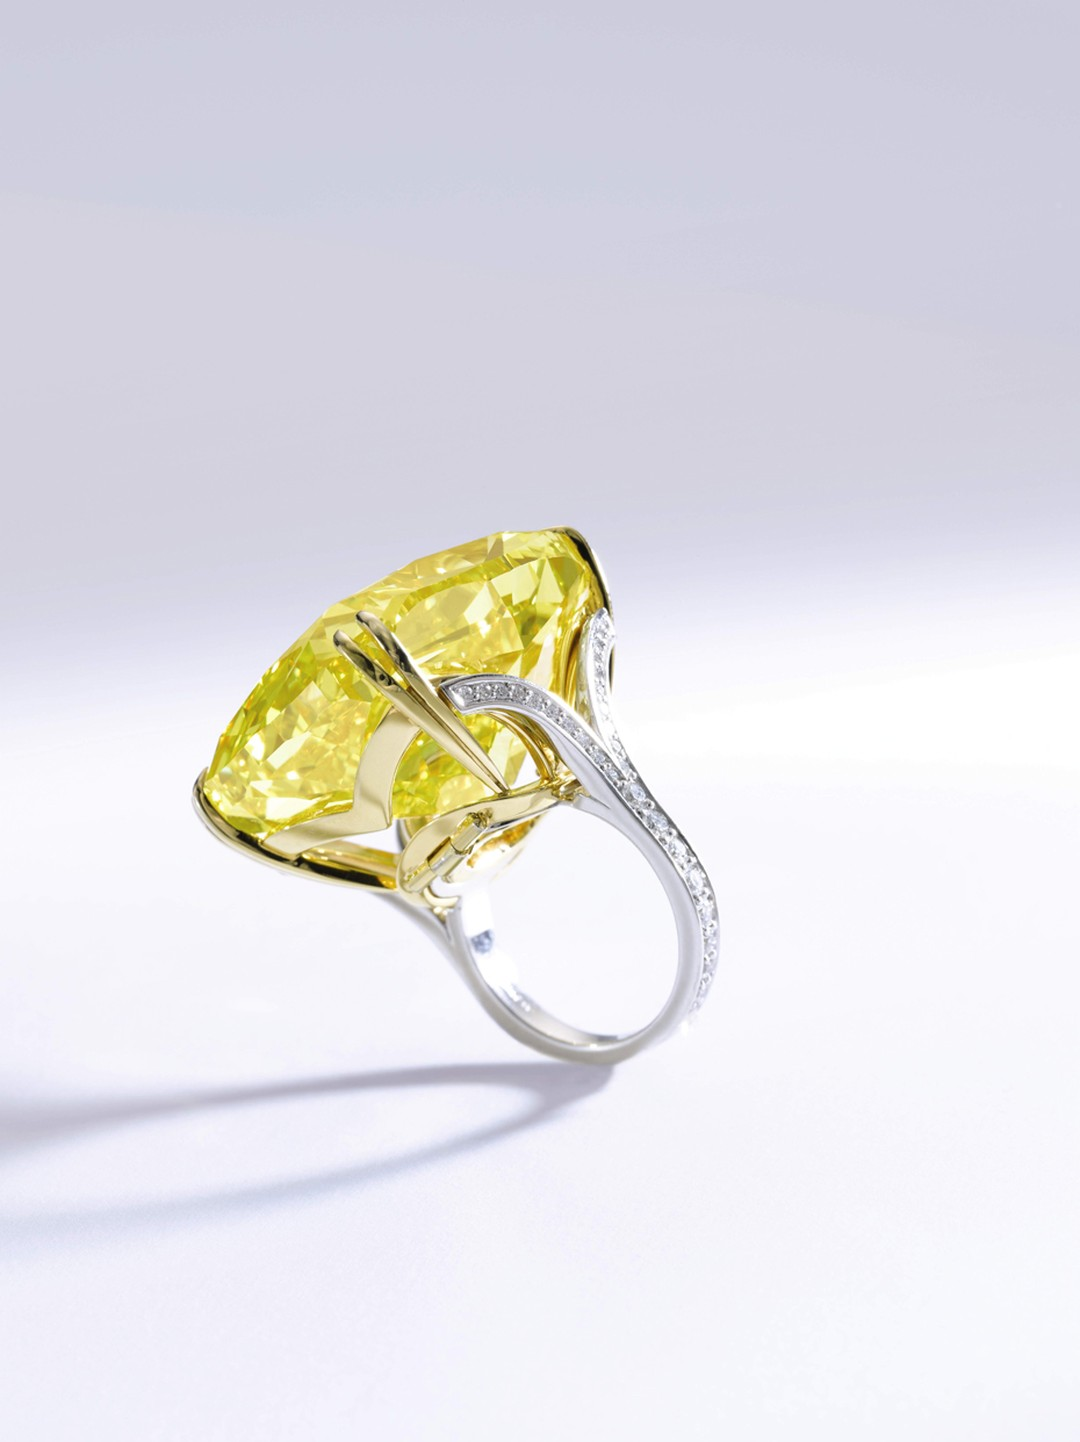 The Graff Vivid Yellow diamond ring features shoulders embellished with brilliant-cut diamonds. Sold for CHF 14.5million (estimate: CHF 13.4- 22.3million)